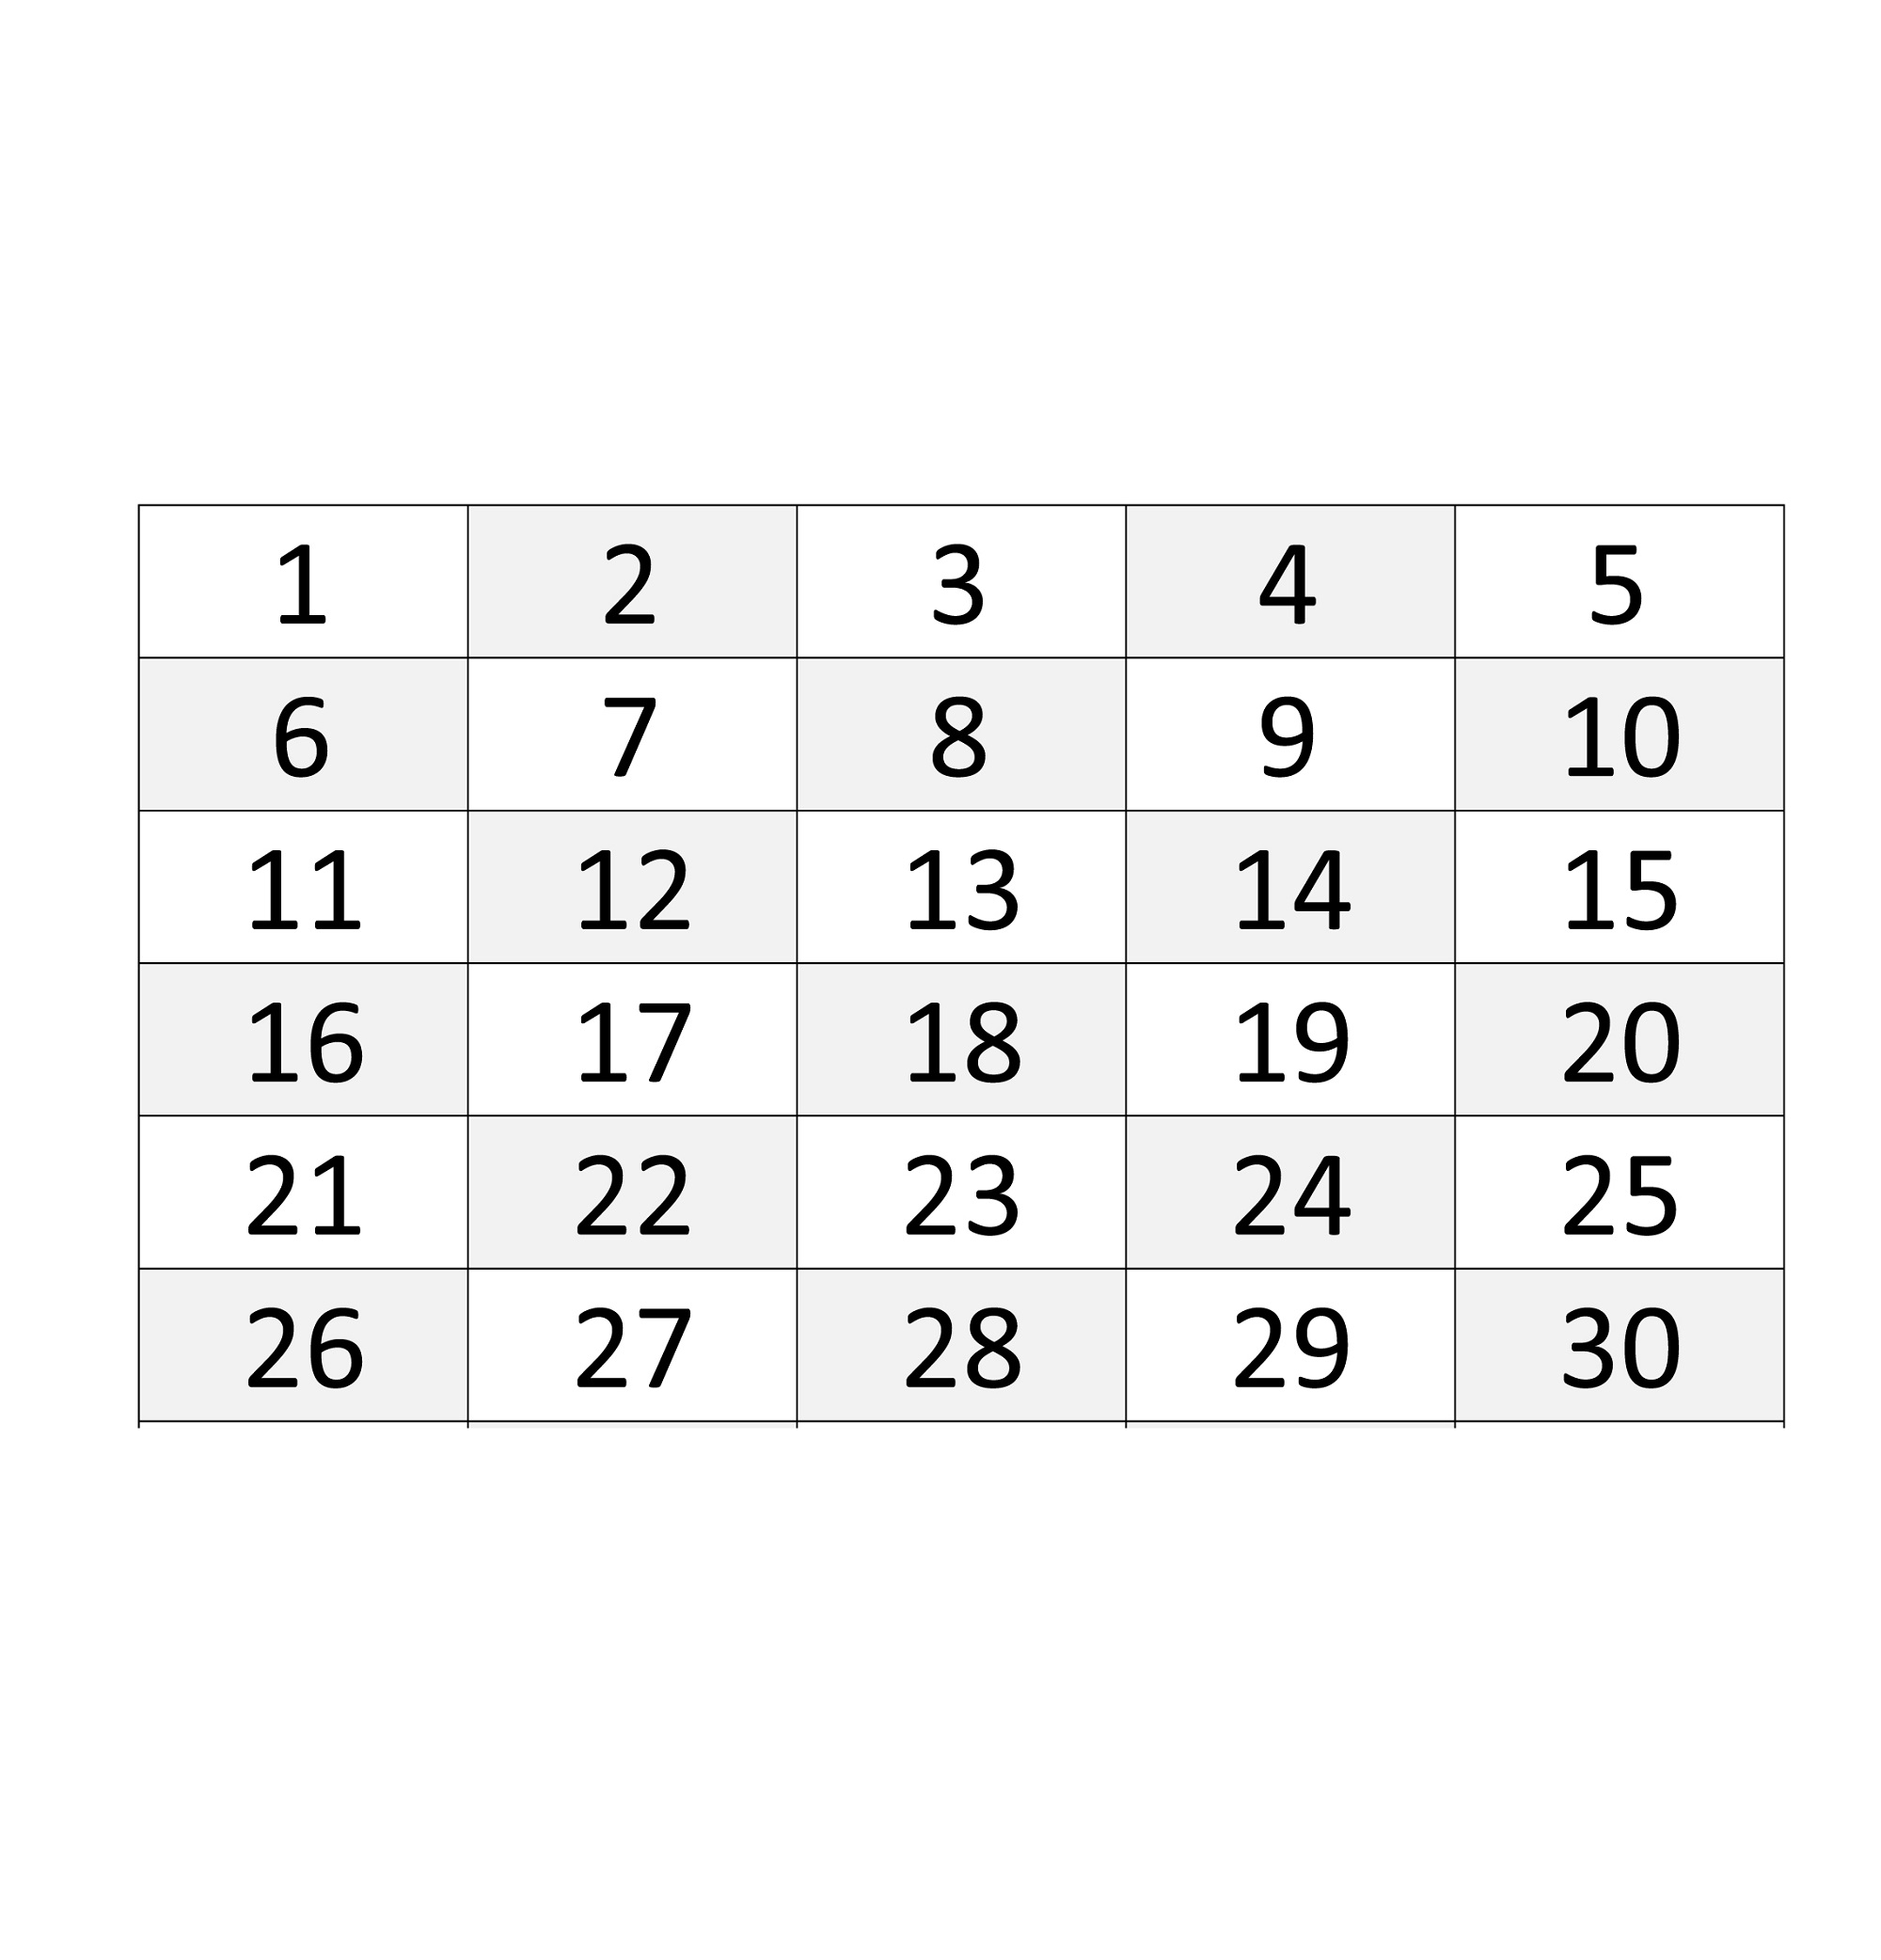 Tactueux image in free printable numbers 1-30